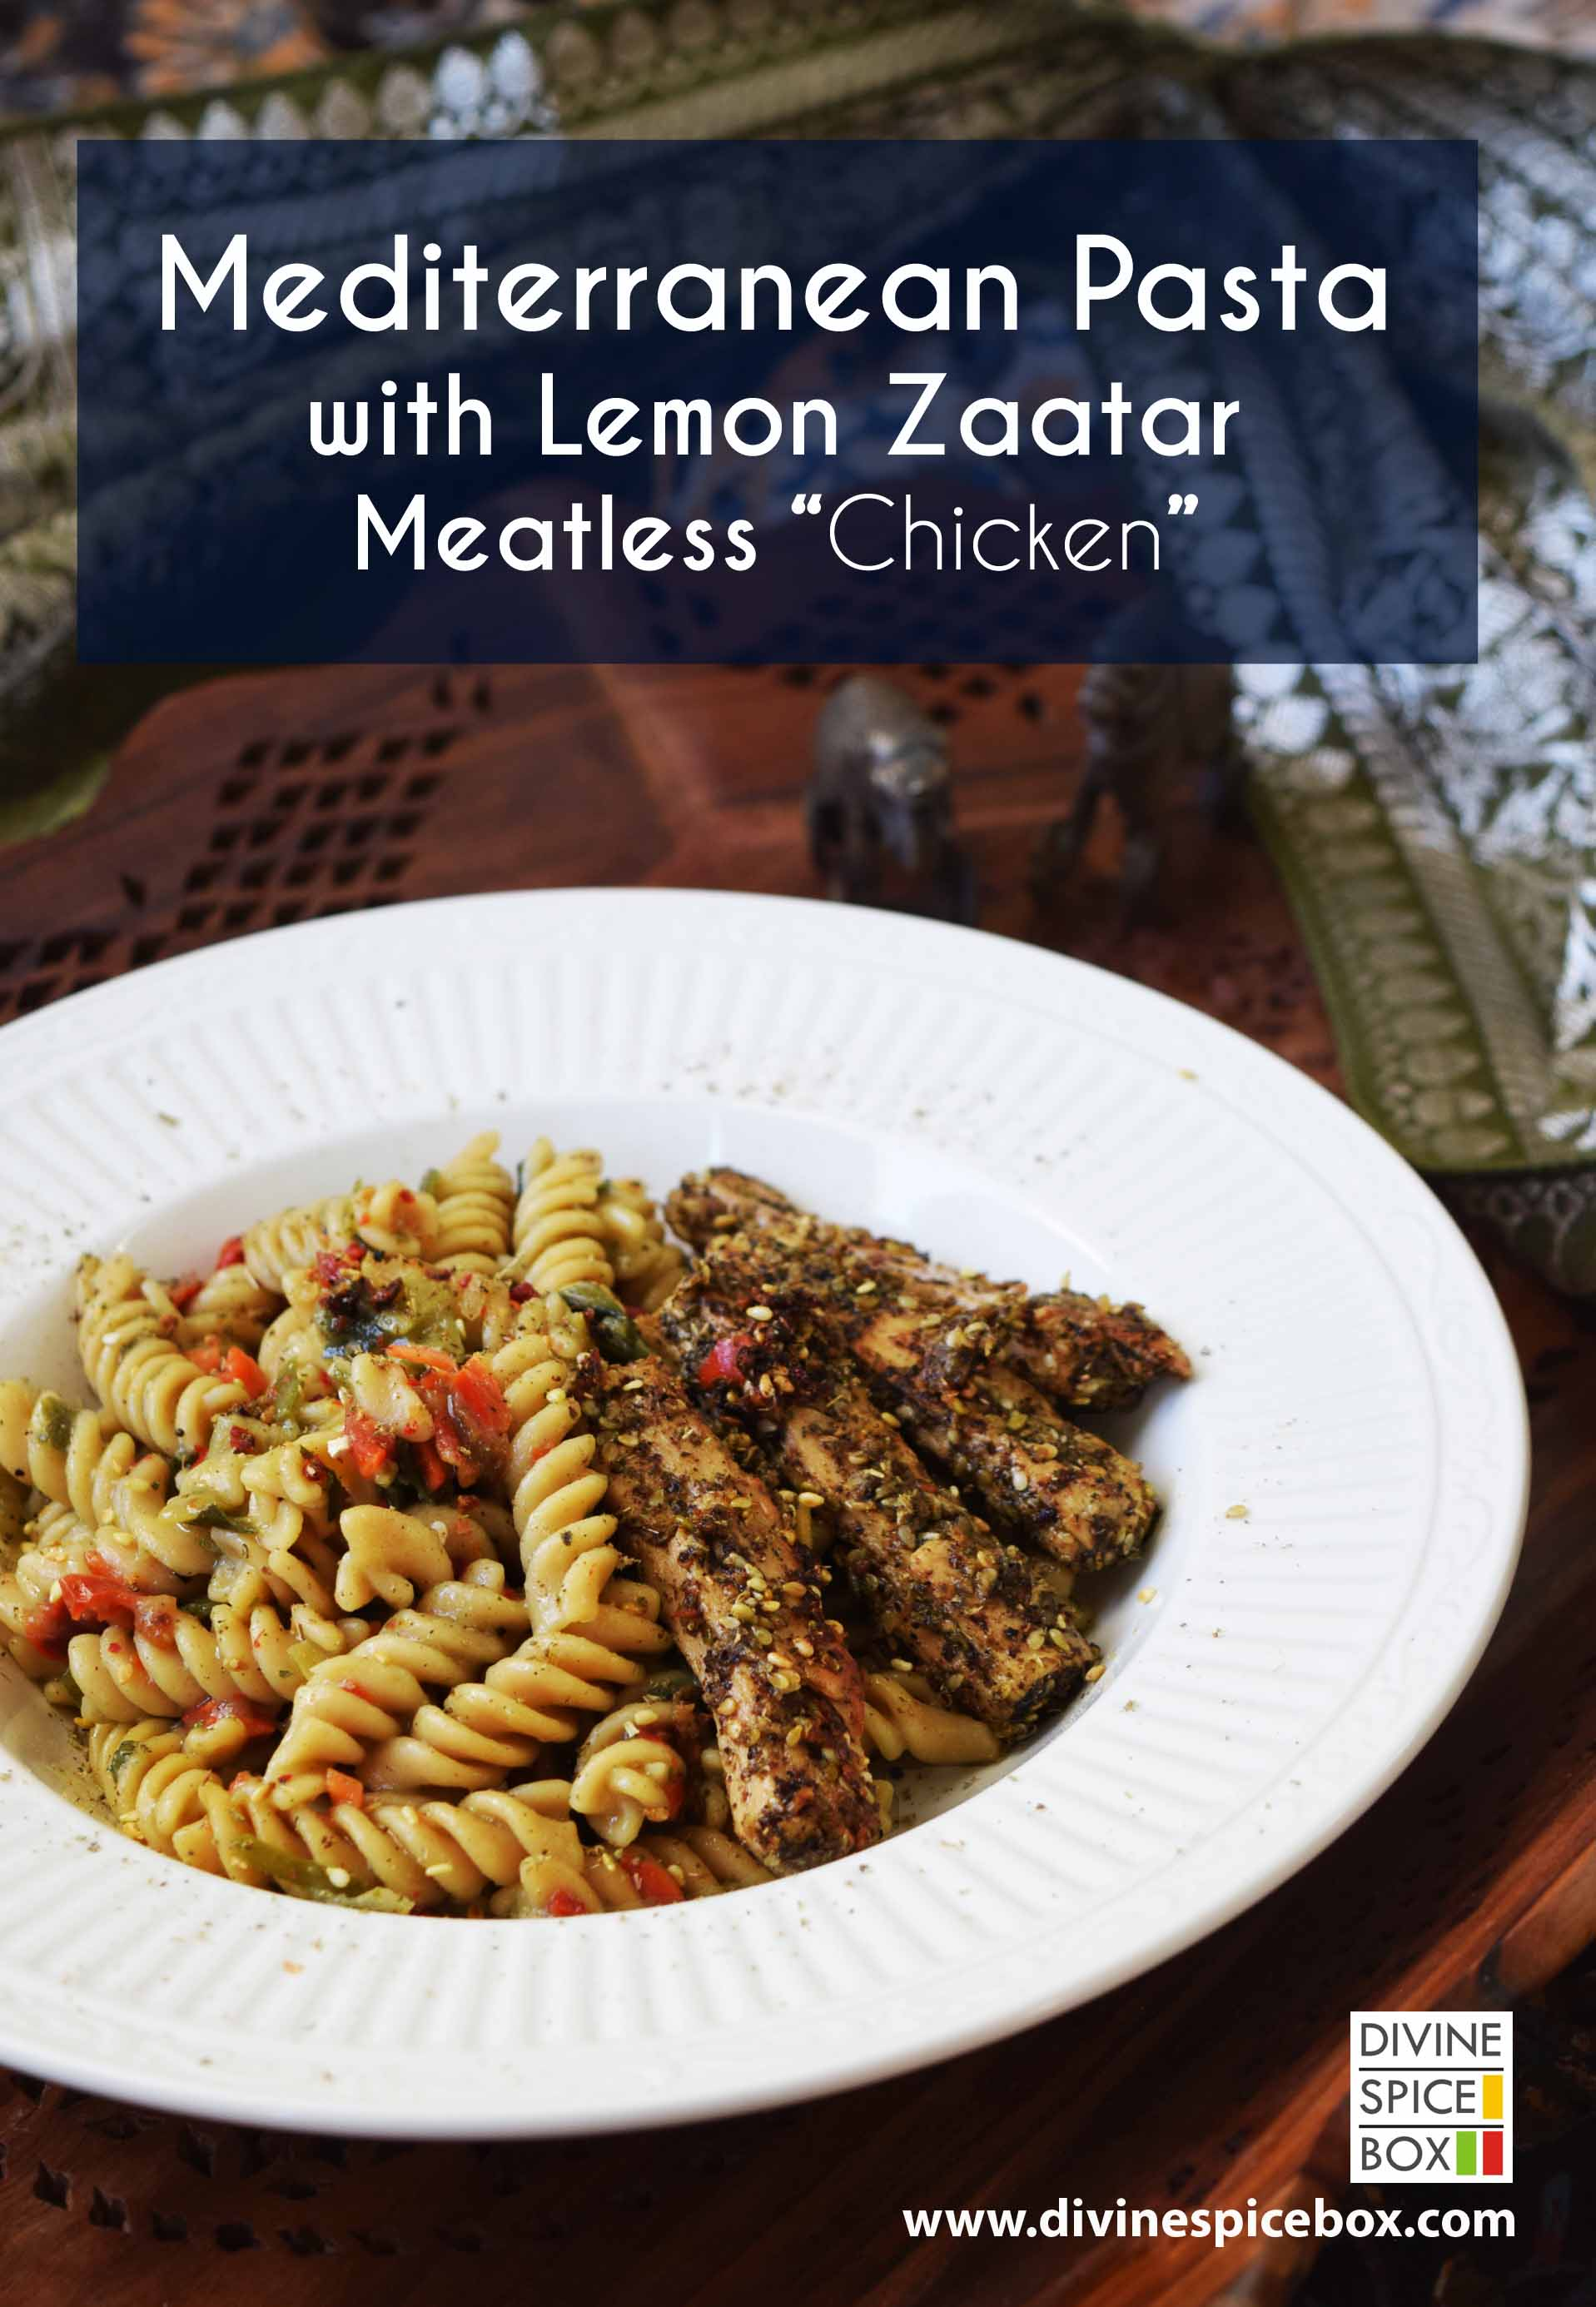 Mediterranean Pasta with lemon Zaatar and Meatless Chicken